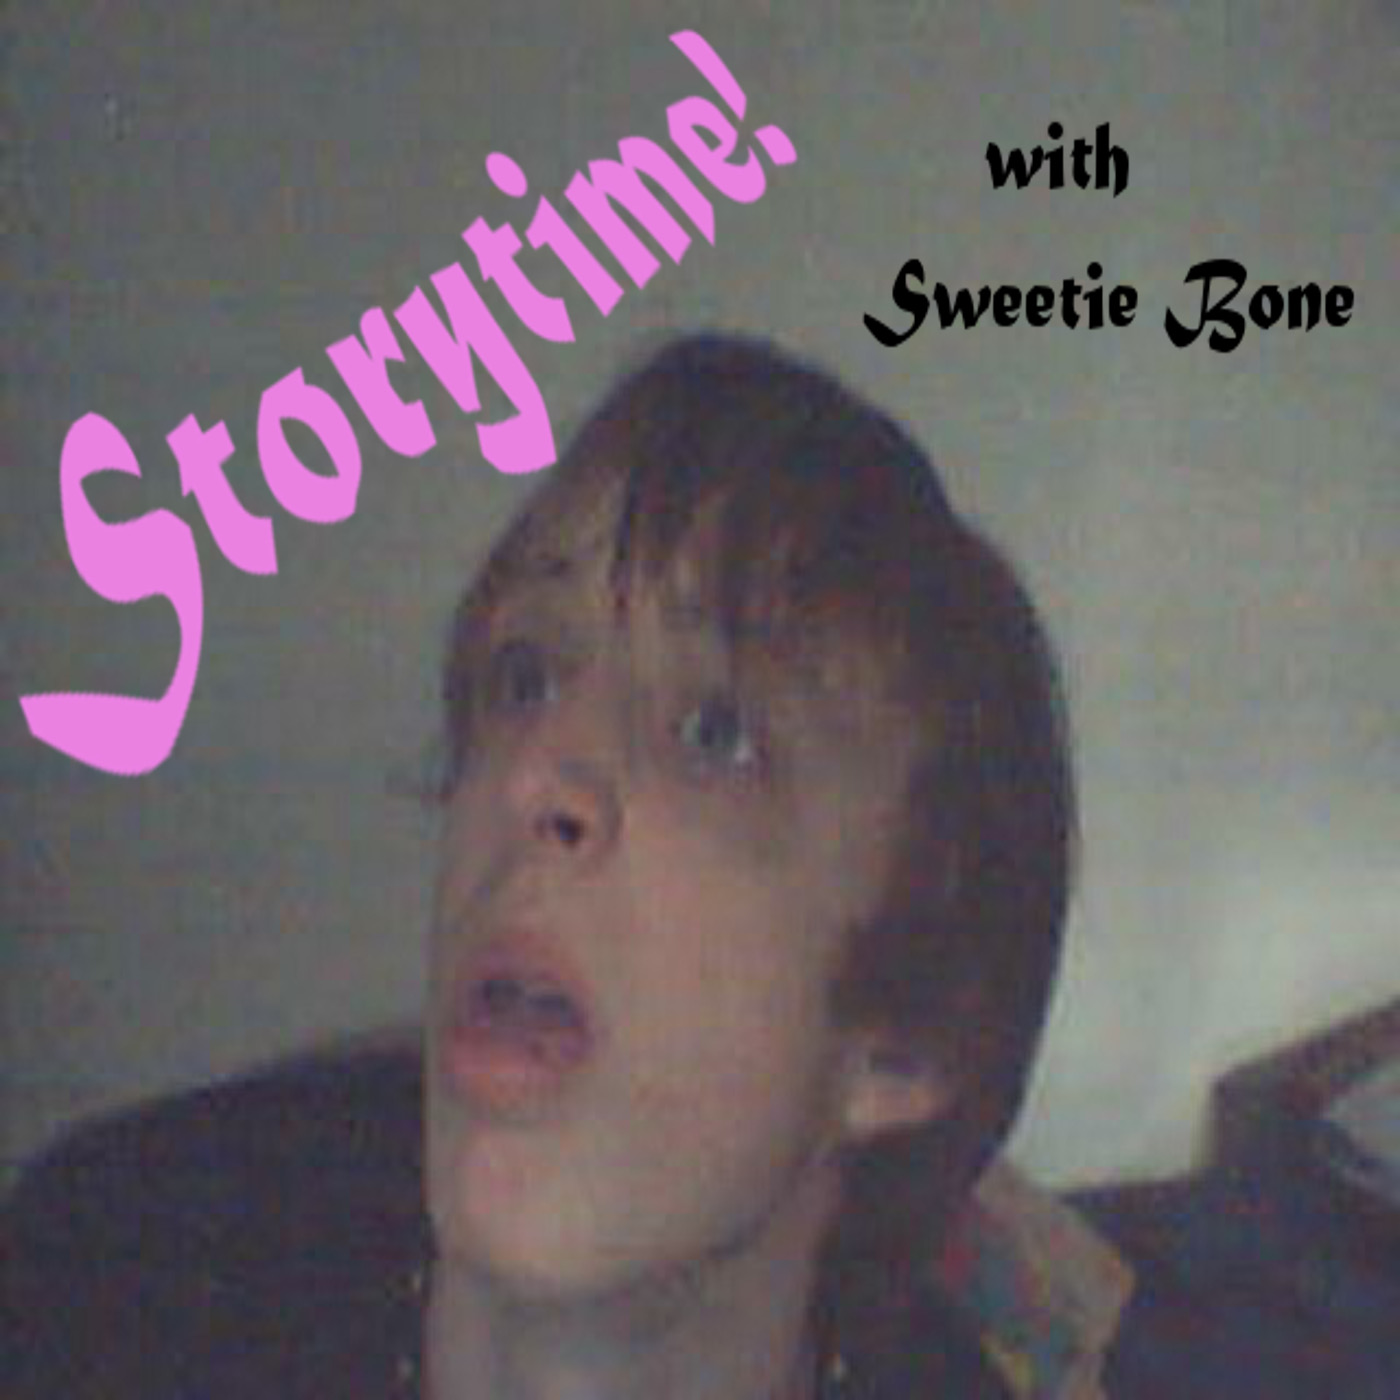 Storytime! with Sweetie Bone